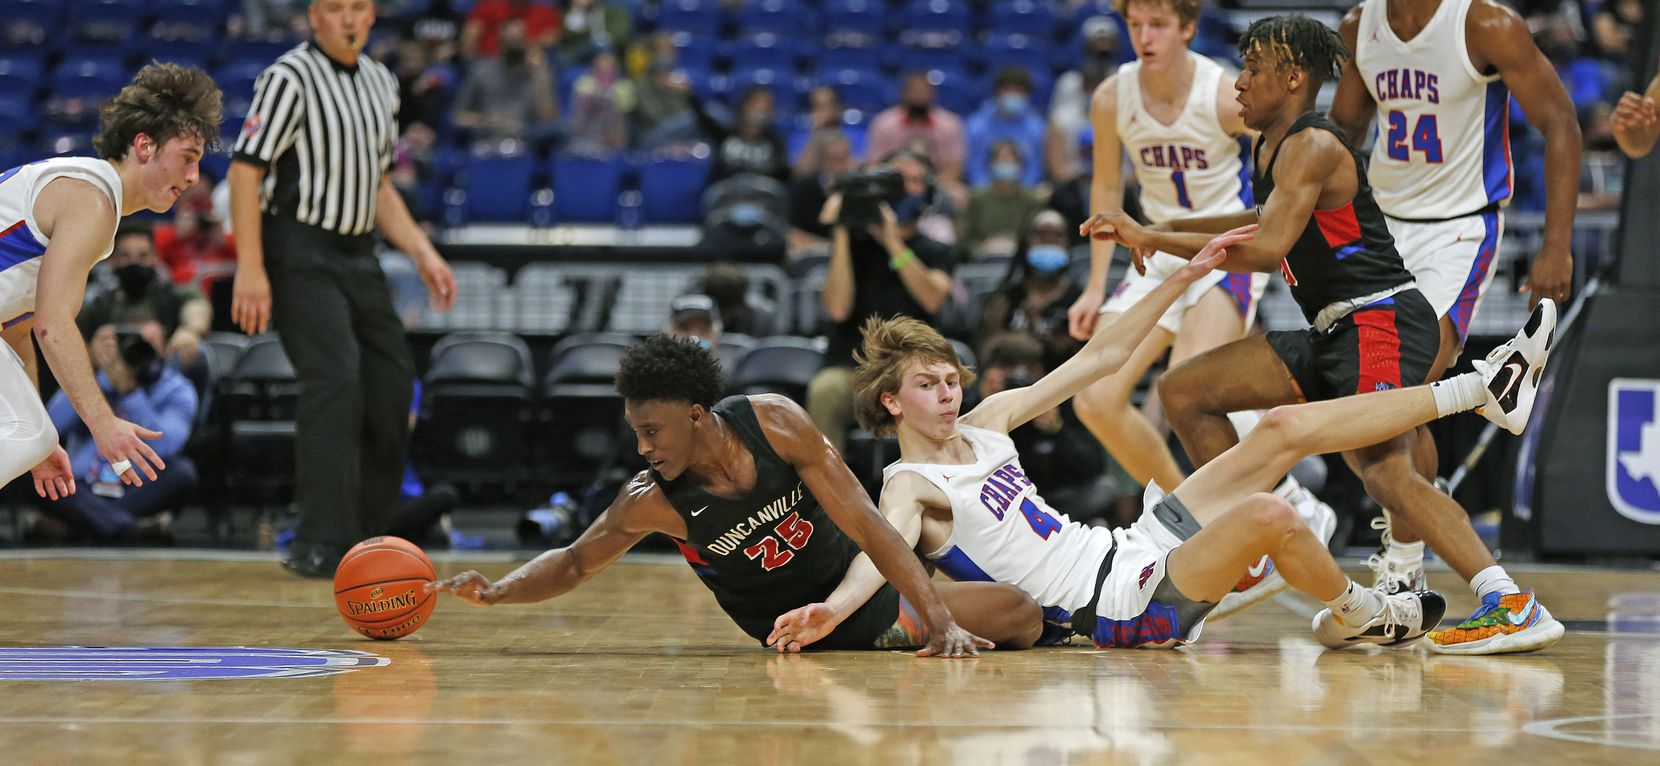 UIL boys Class 6A basketball state championship game between Duncanville and Austin Westlake on Saturday, March 13, 2021 at the Alamodome.